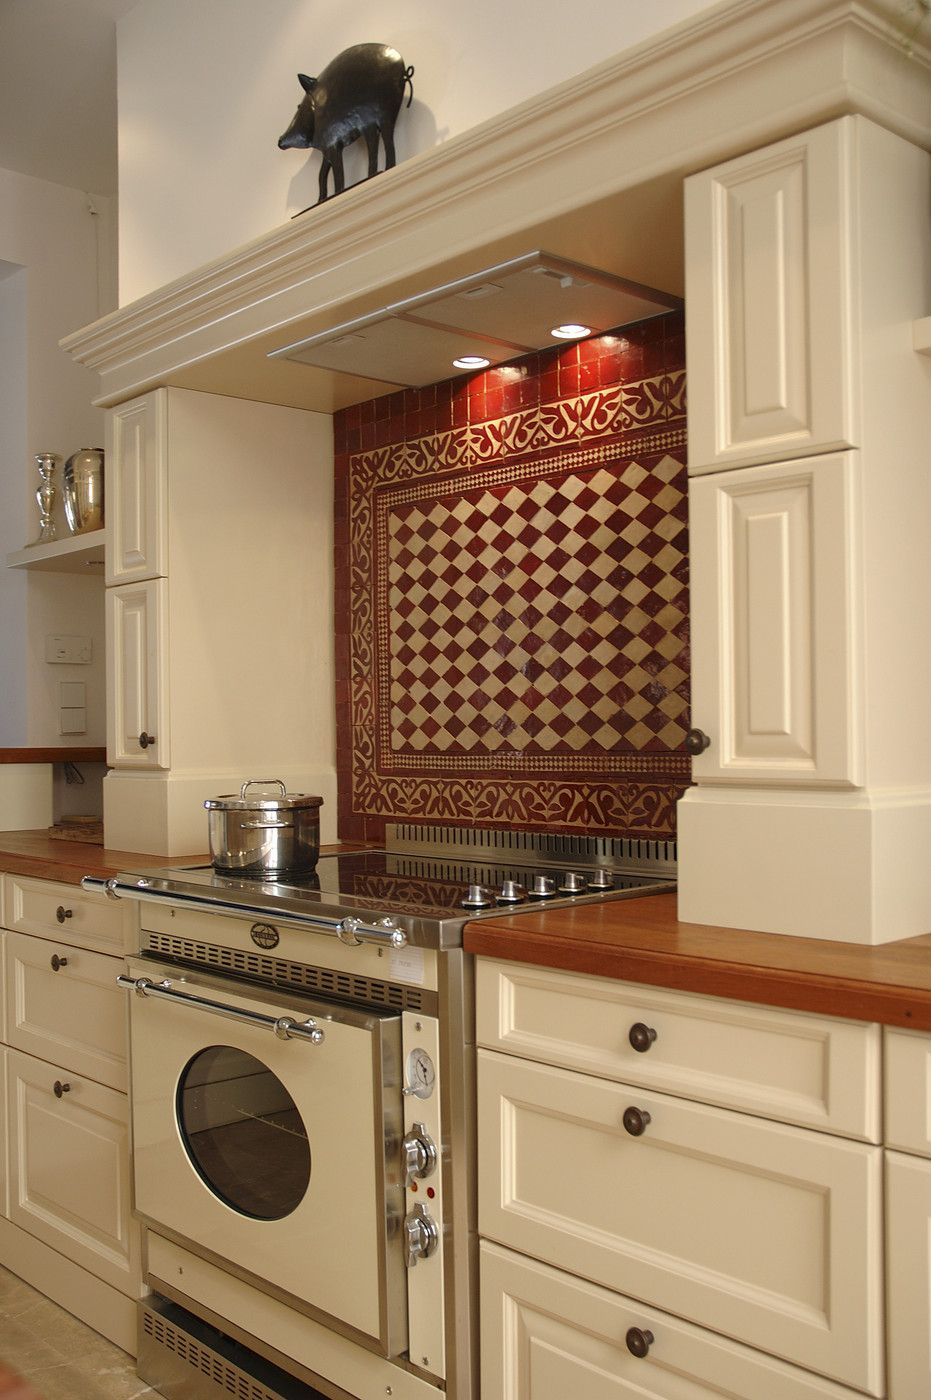 Country Kitchen With Cream Cabinets And Red Tile Backsplash Lonny